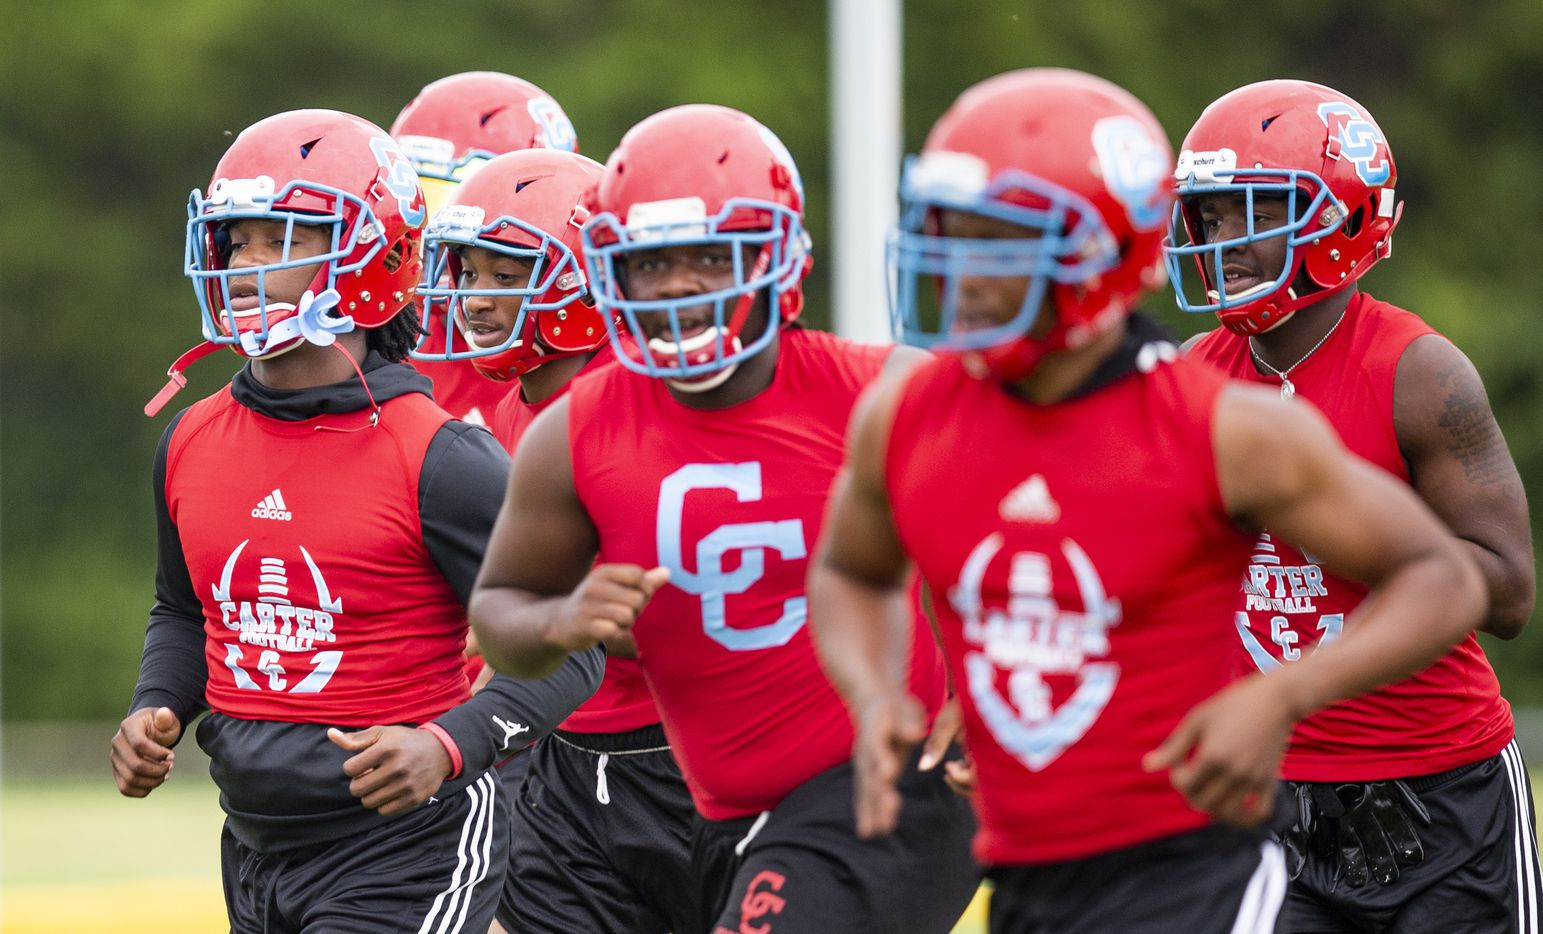 Carter senior linebacker Janari Hyder, left, and his teammates run drills during the first day of football practice at Carter High School in Dallas, Monday, August 2, 2021. (Brandon Wade/Special Contributor)